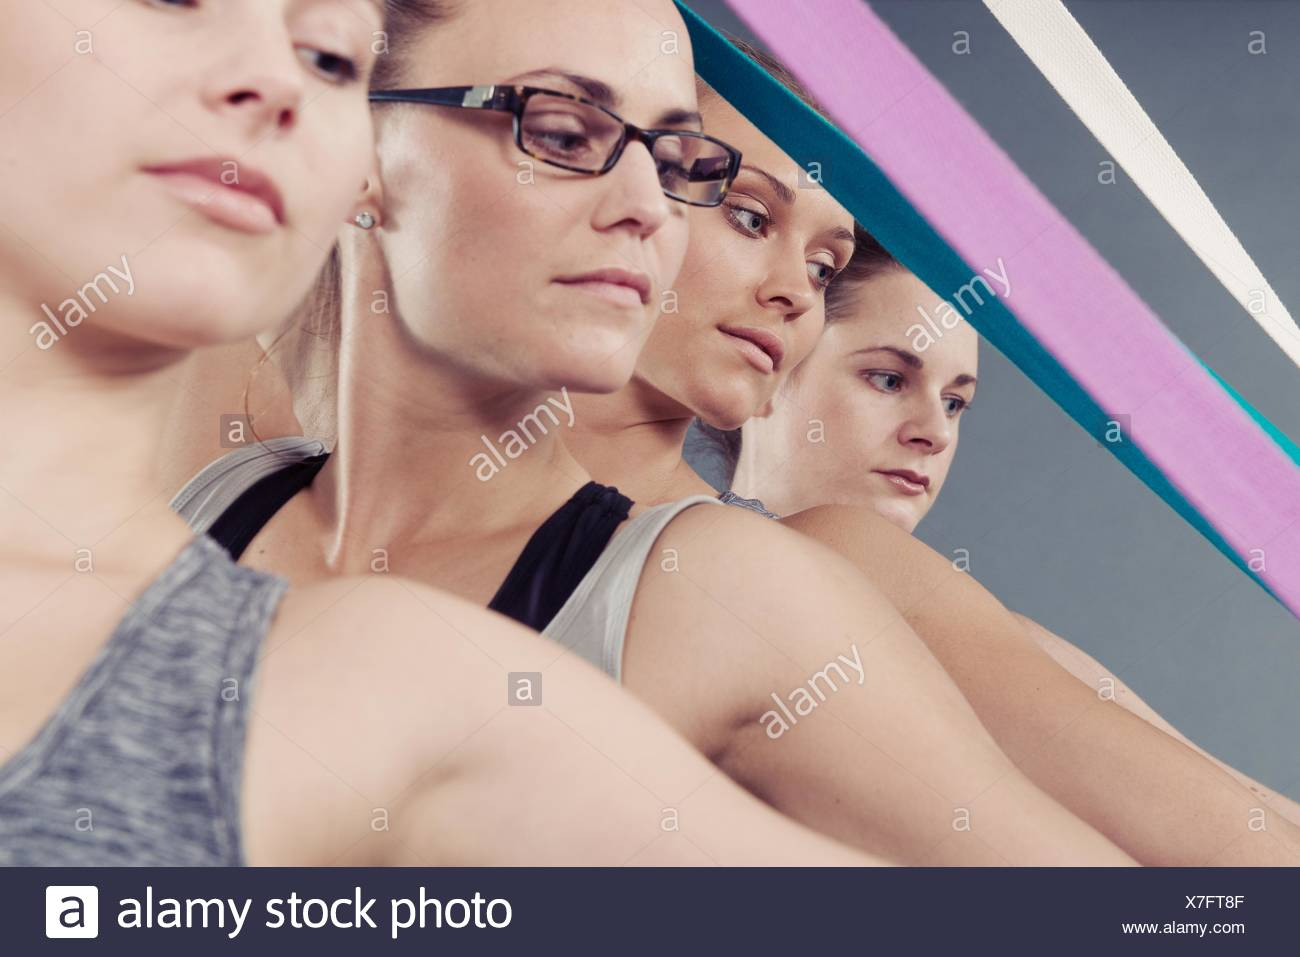 Young women using coloured bands, grey background - Stock Image